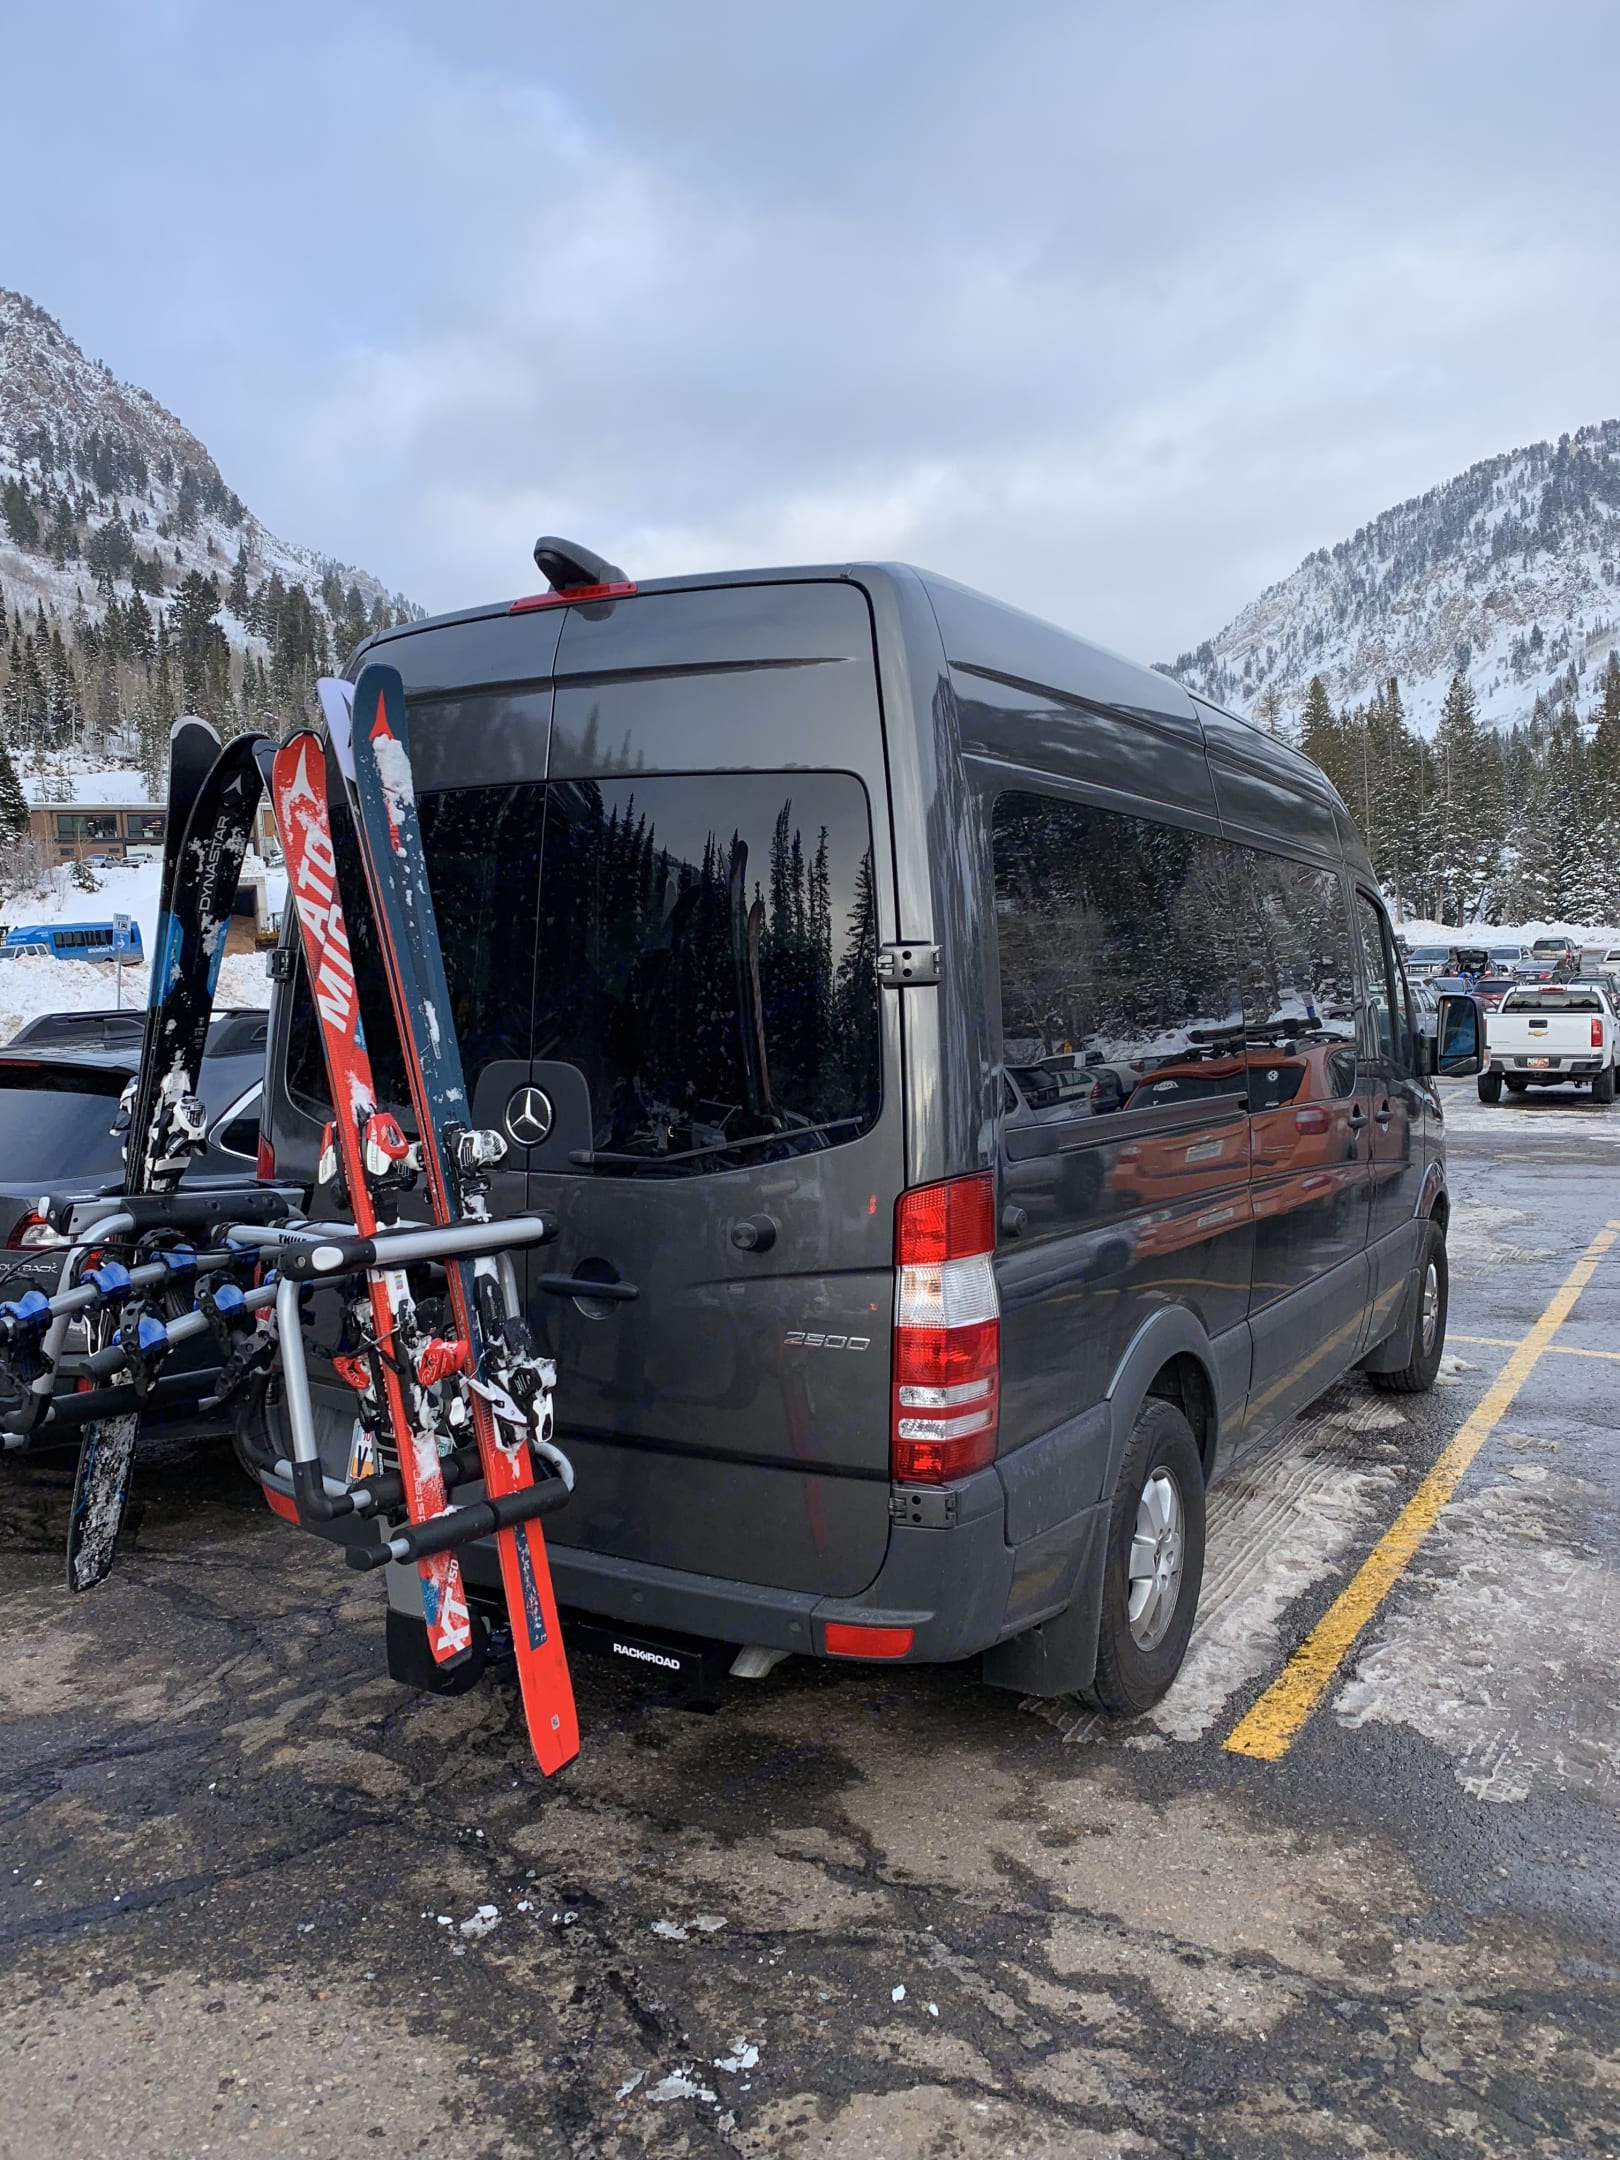 Ski Rack available as an add-on . Carries 6 skis or 4 snoboards.. Mercedes Sprinter 2018